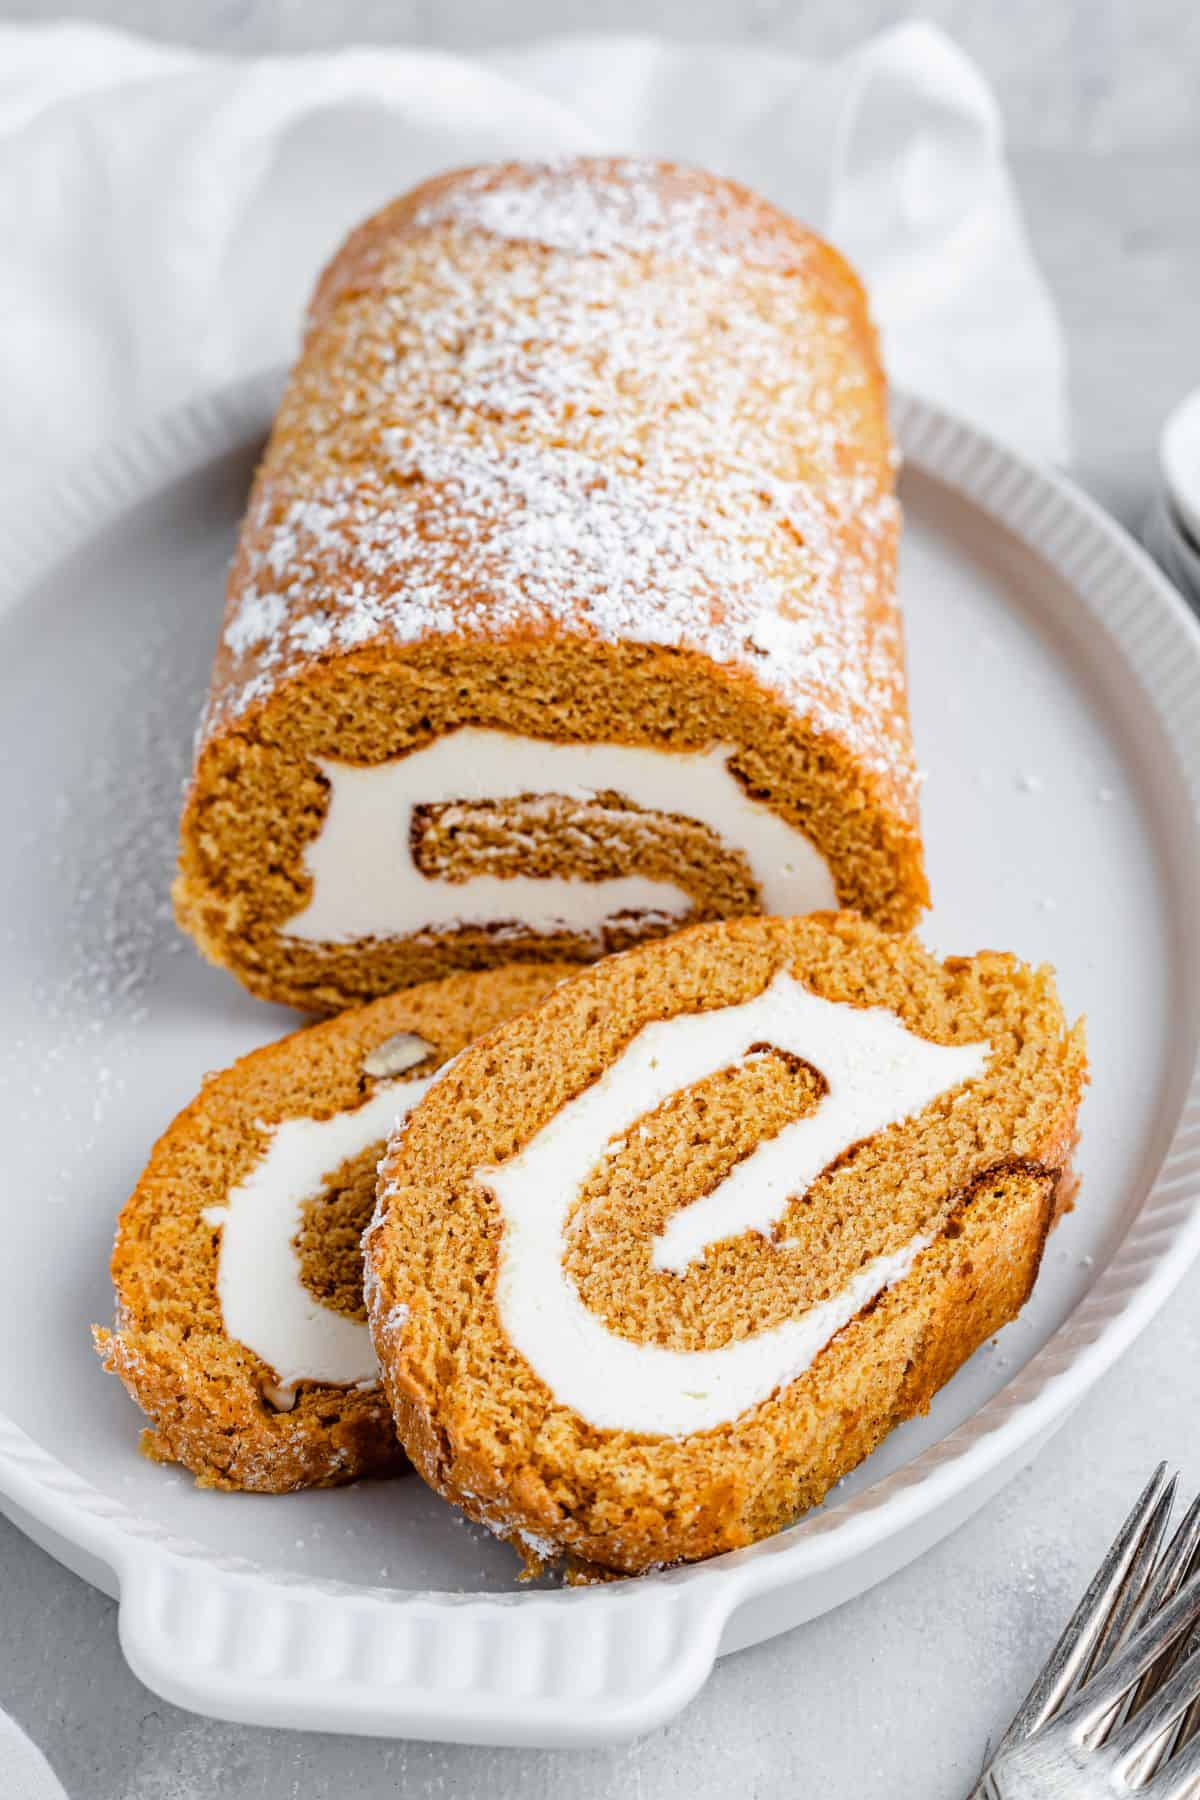 A shot of the pumpkin roll cake, dusted with powdered sugar, with two slices overlapping on a platter.